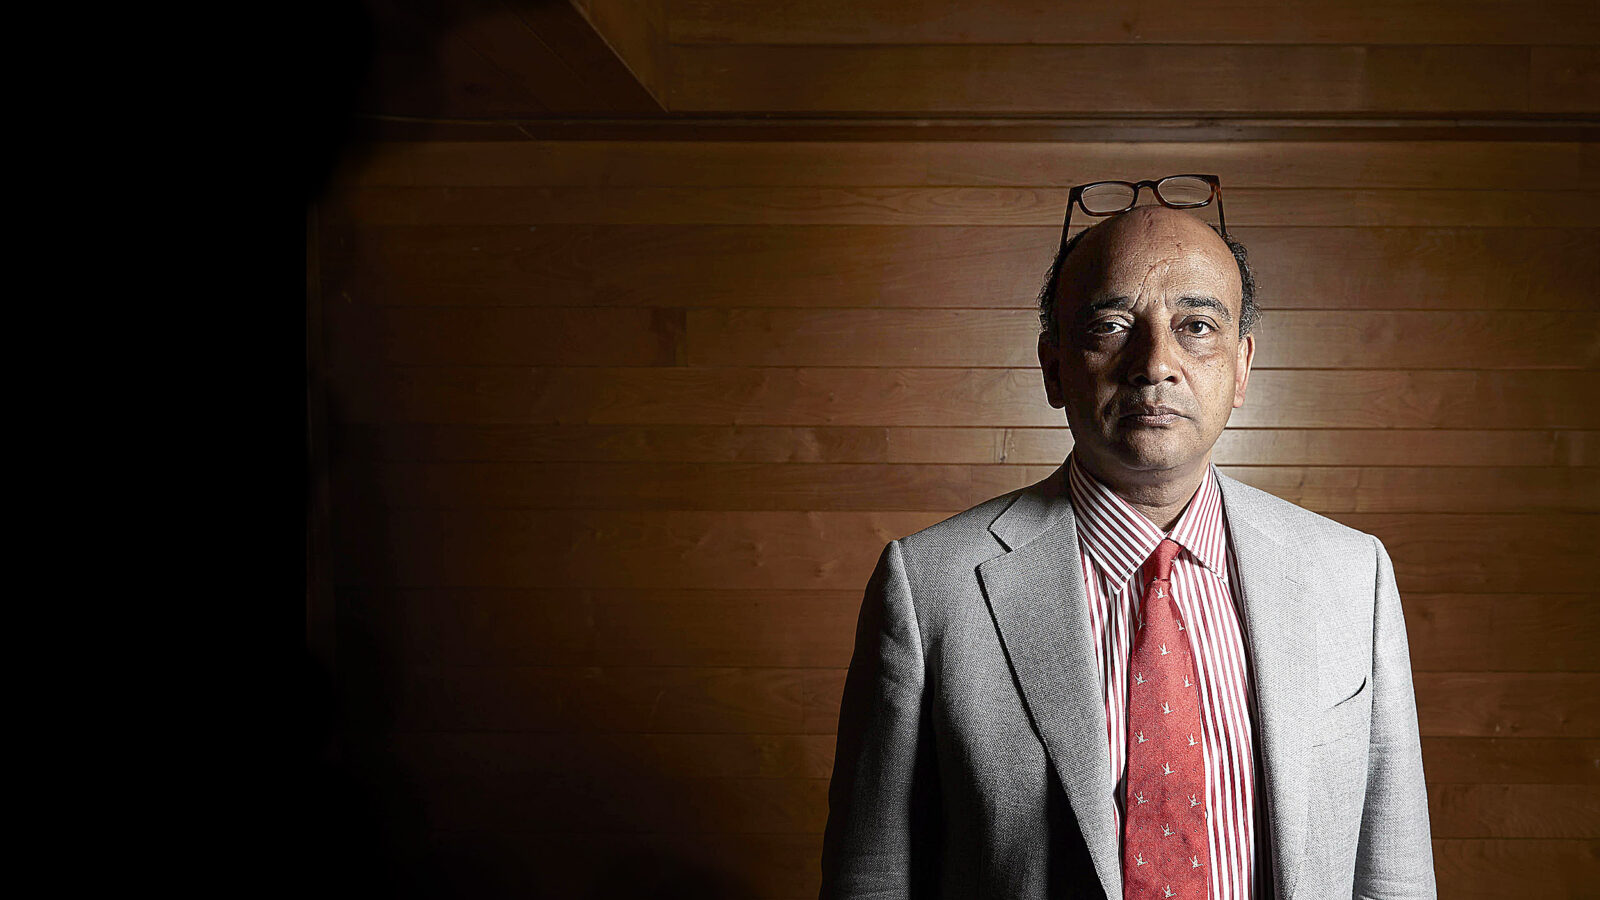 Kwame Anthony Appiah: One Way to Think About Racism